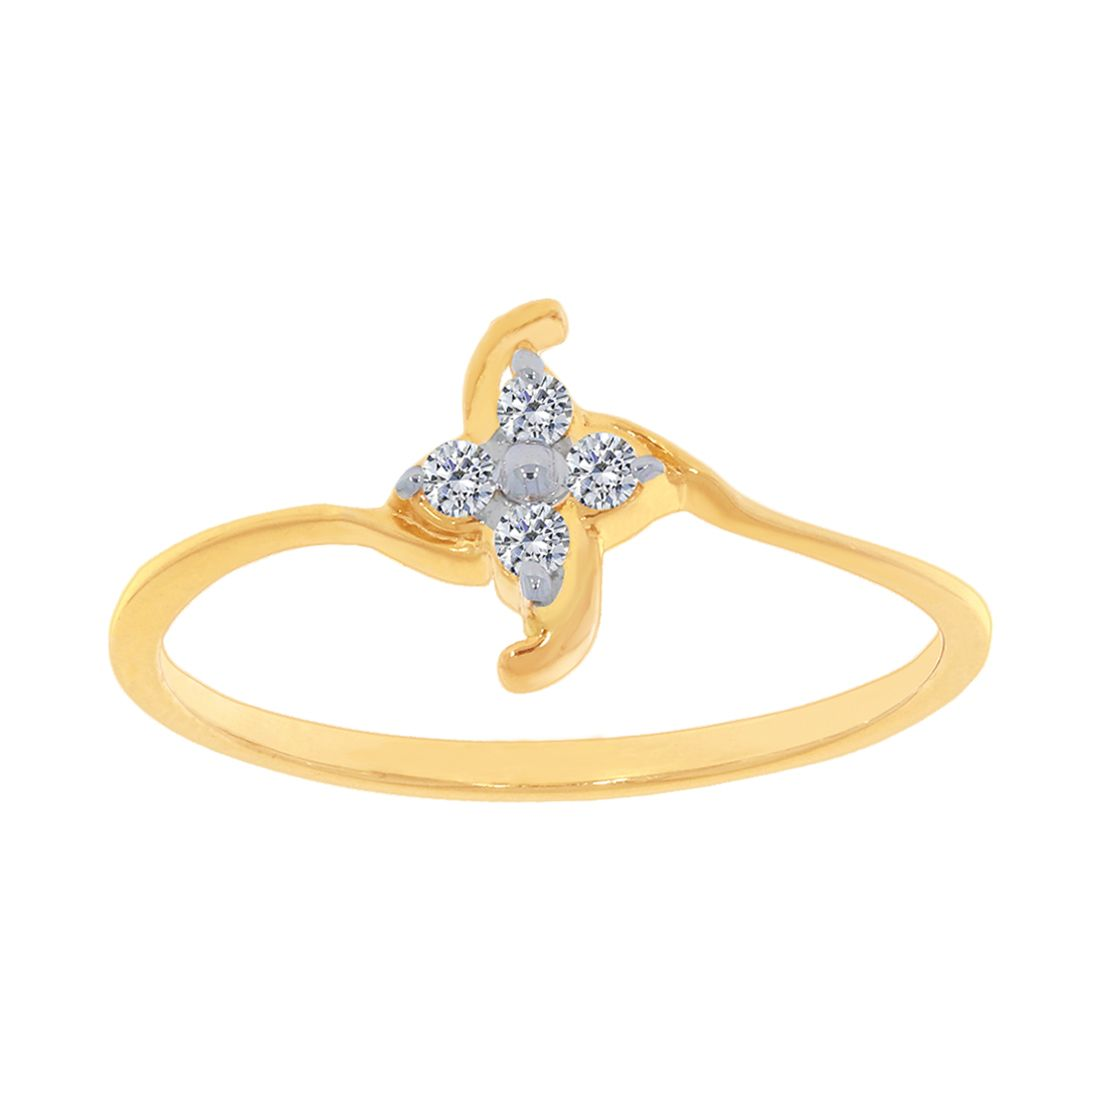 Kalayan Jewellers Ring Model With Price | Ring designs, Gold rings ...